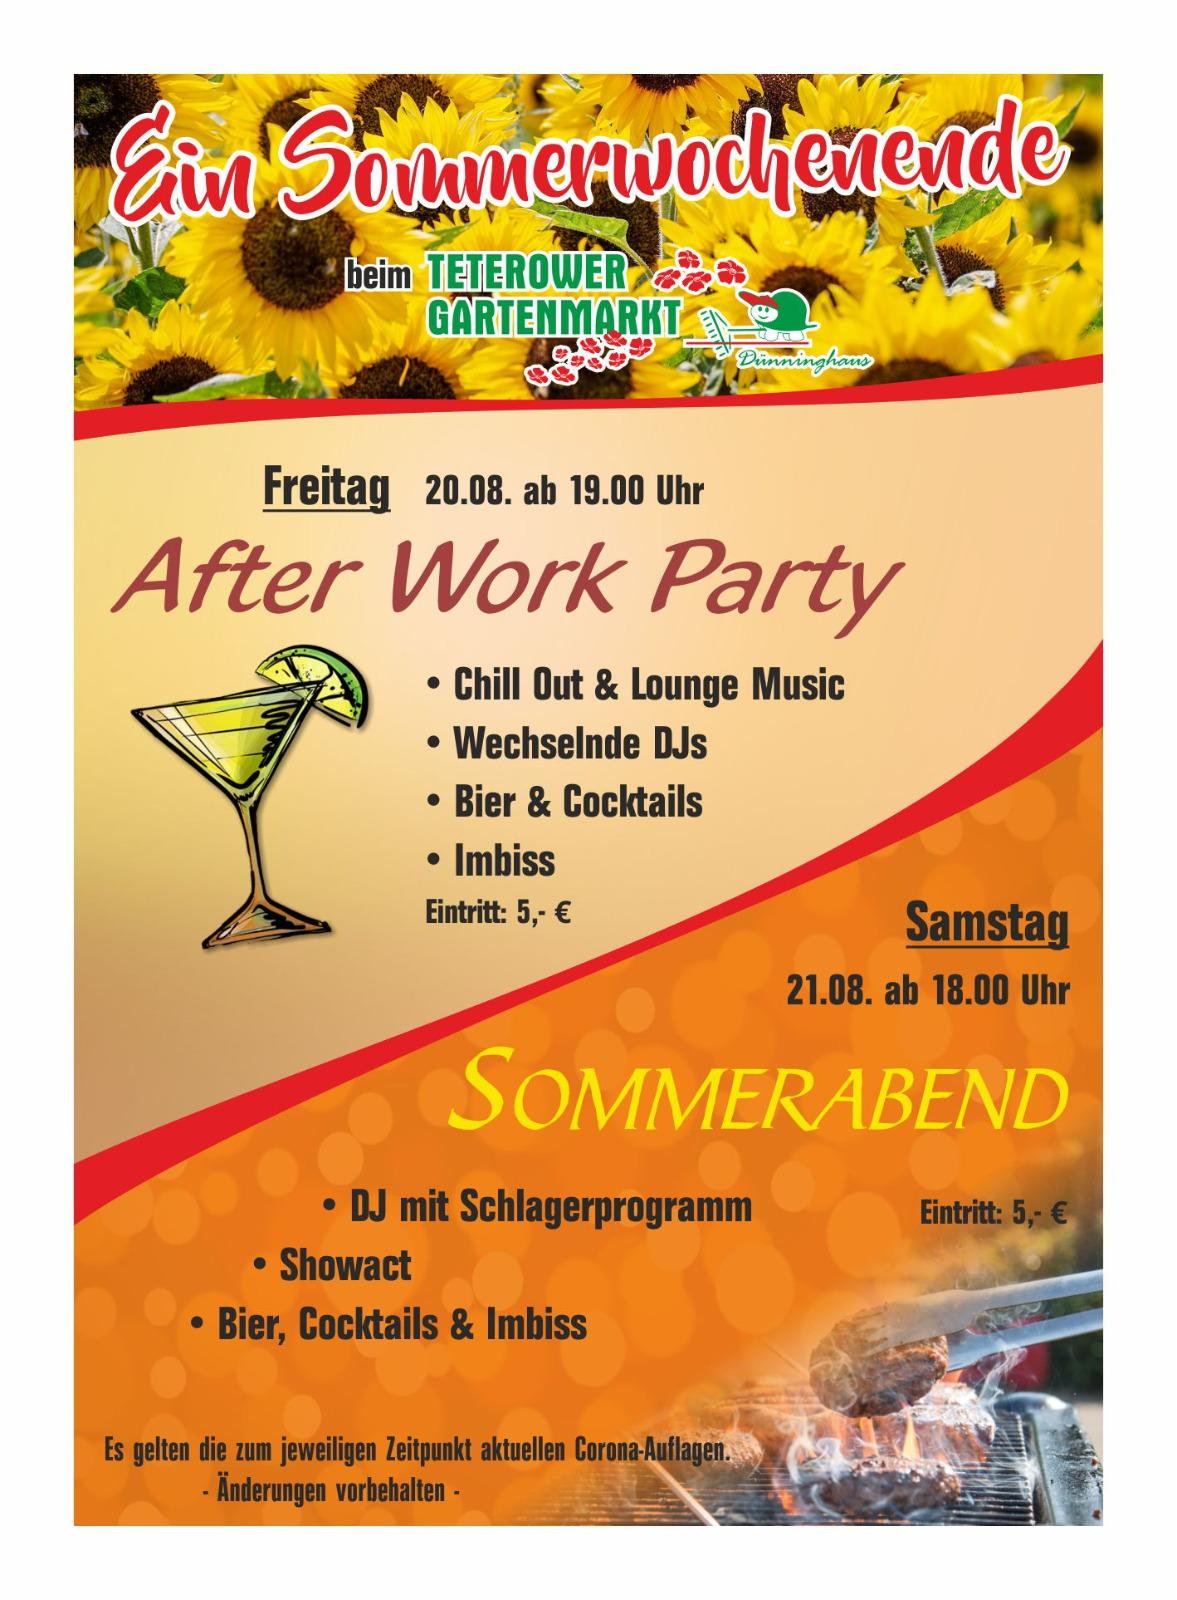 After Work Party - Sommerabend 21.08.2021